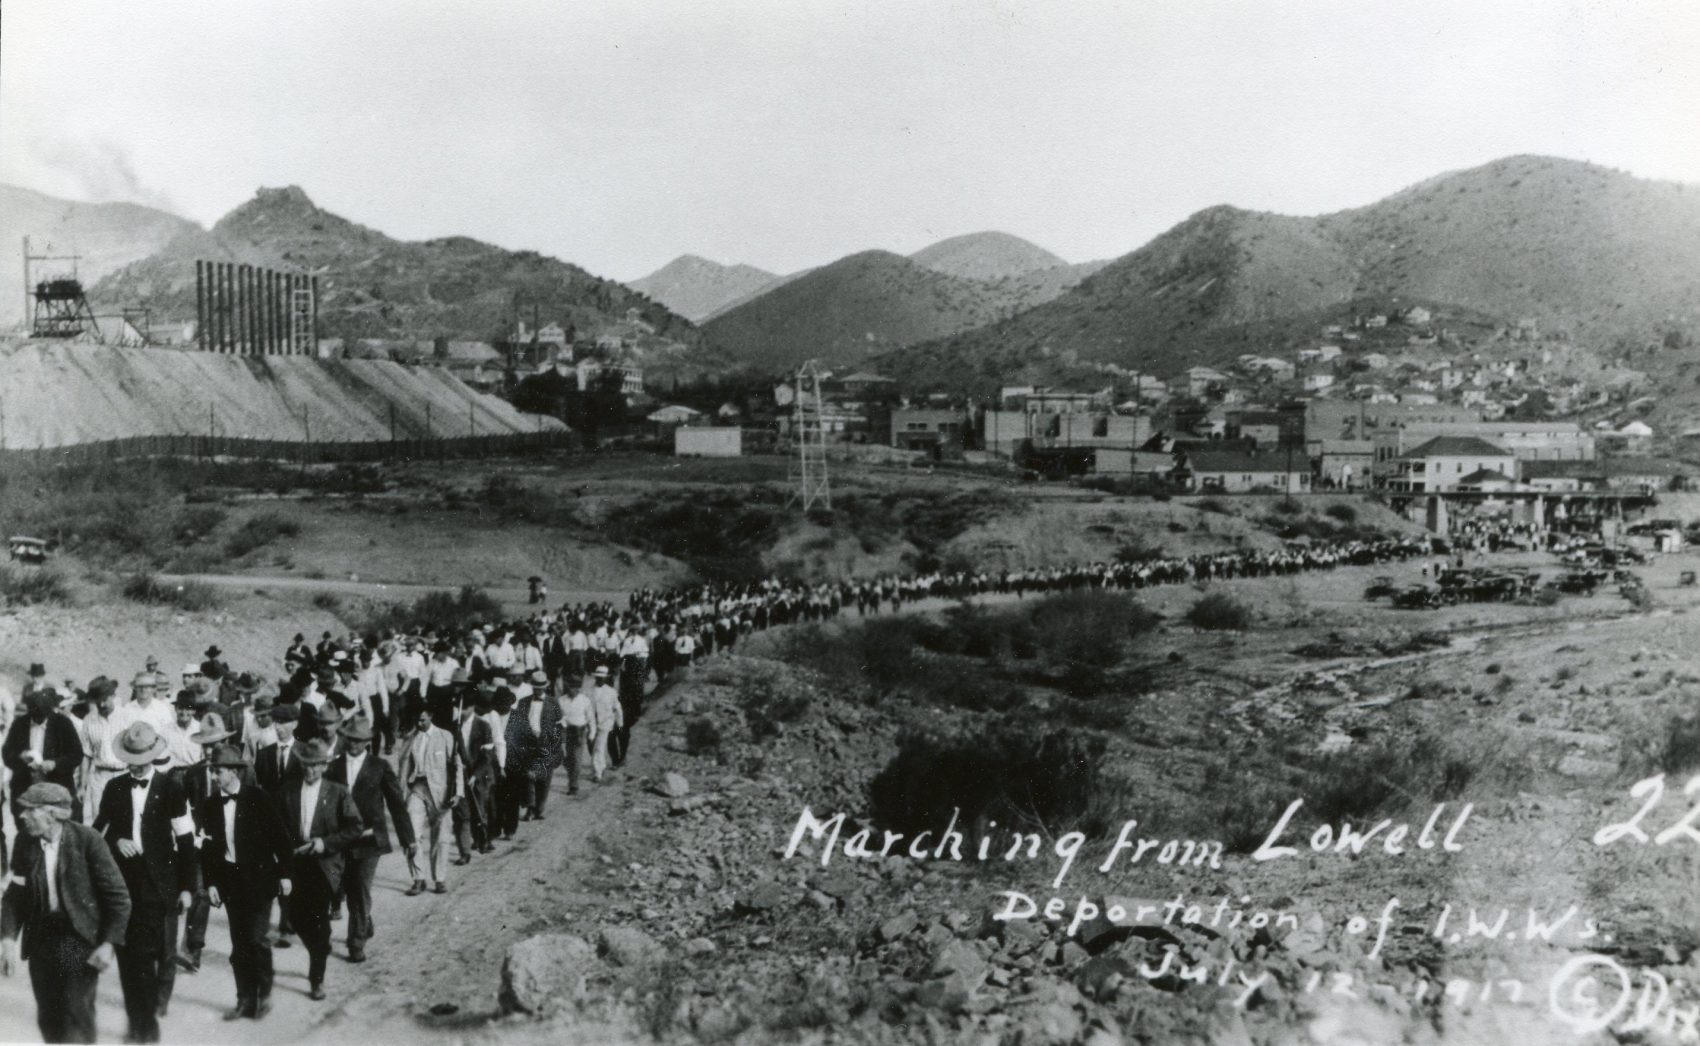 The Bisbee Deportation started in the early morning hours of July 12, 1917. Striking miners, and other men caught up in the frenzy, were marched several miles out of the small Southern Arizona town. About 1,200 were eventually packed into cattle cars and unloaded in the middle of the New Mexico desert. (Courtesy of the Bisbee Mining & Historical Museum, a Smithsonian Affiliate)